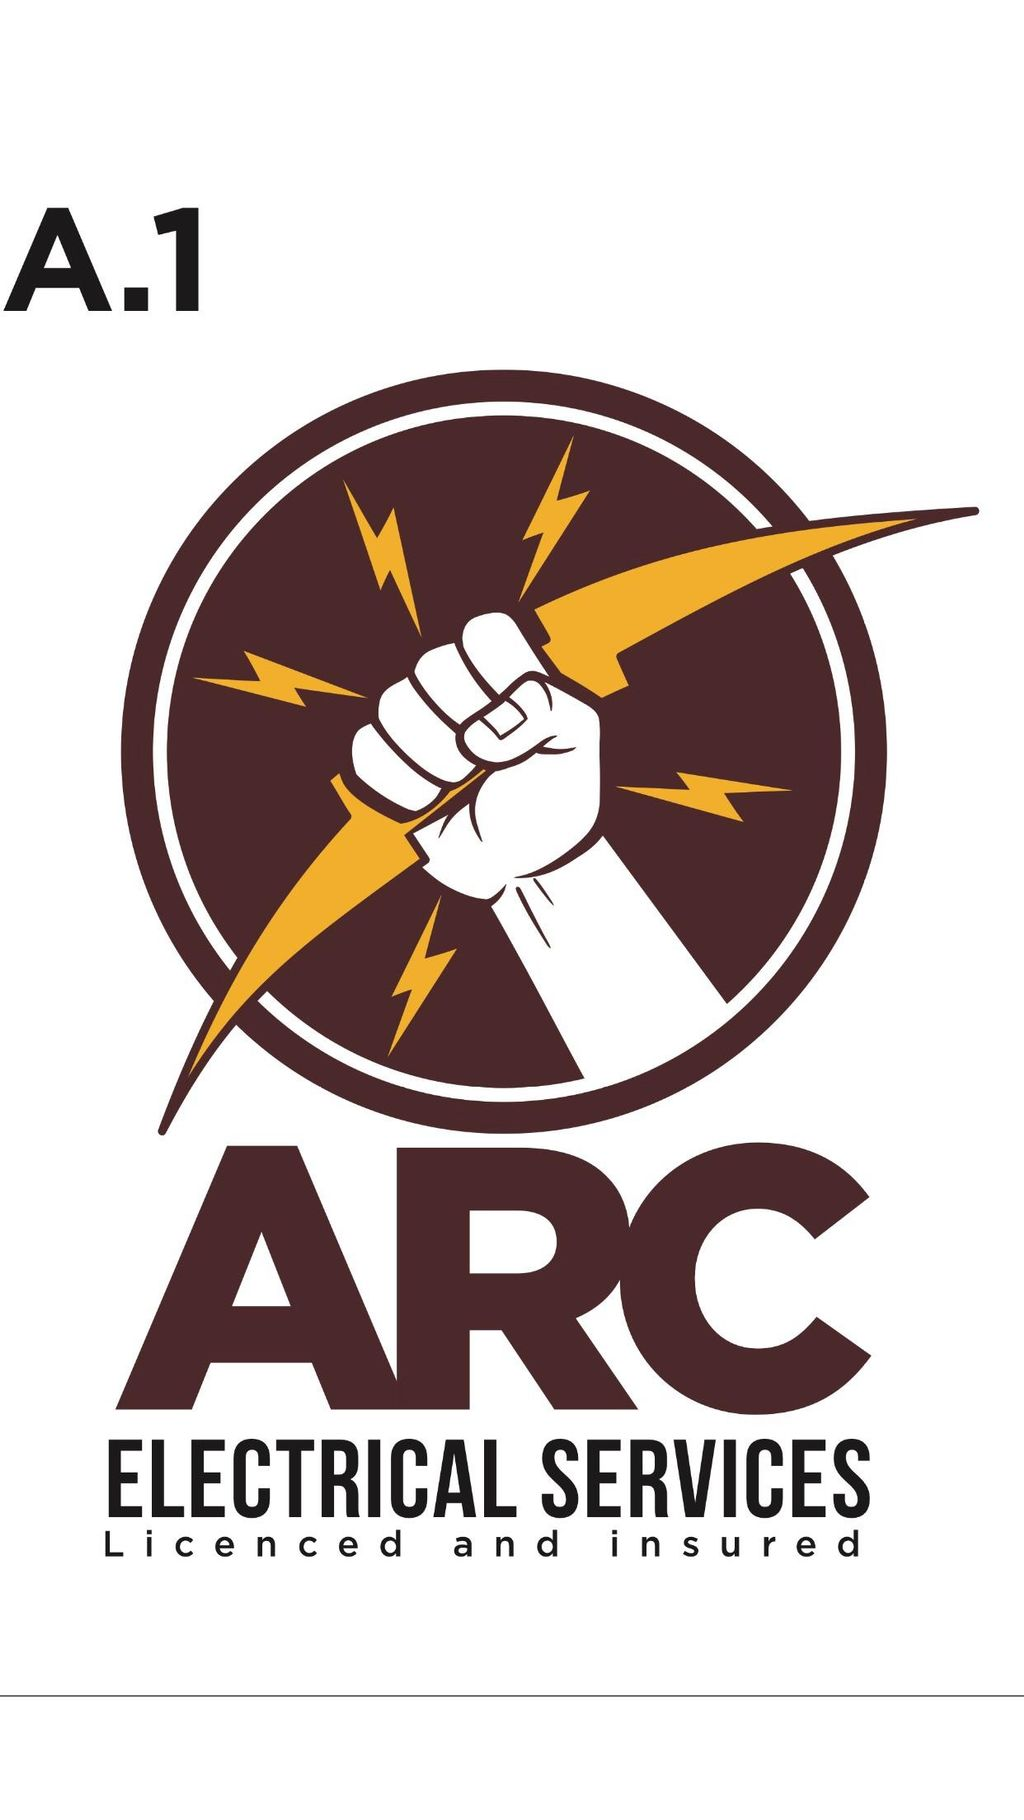 ARC ELECTRICAL SERVICES LLC